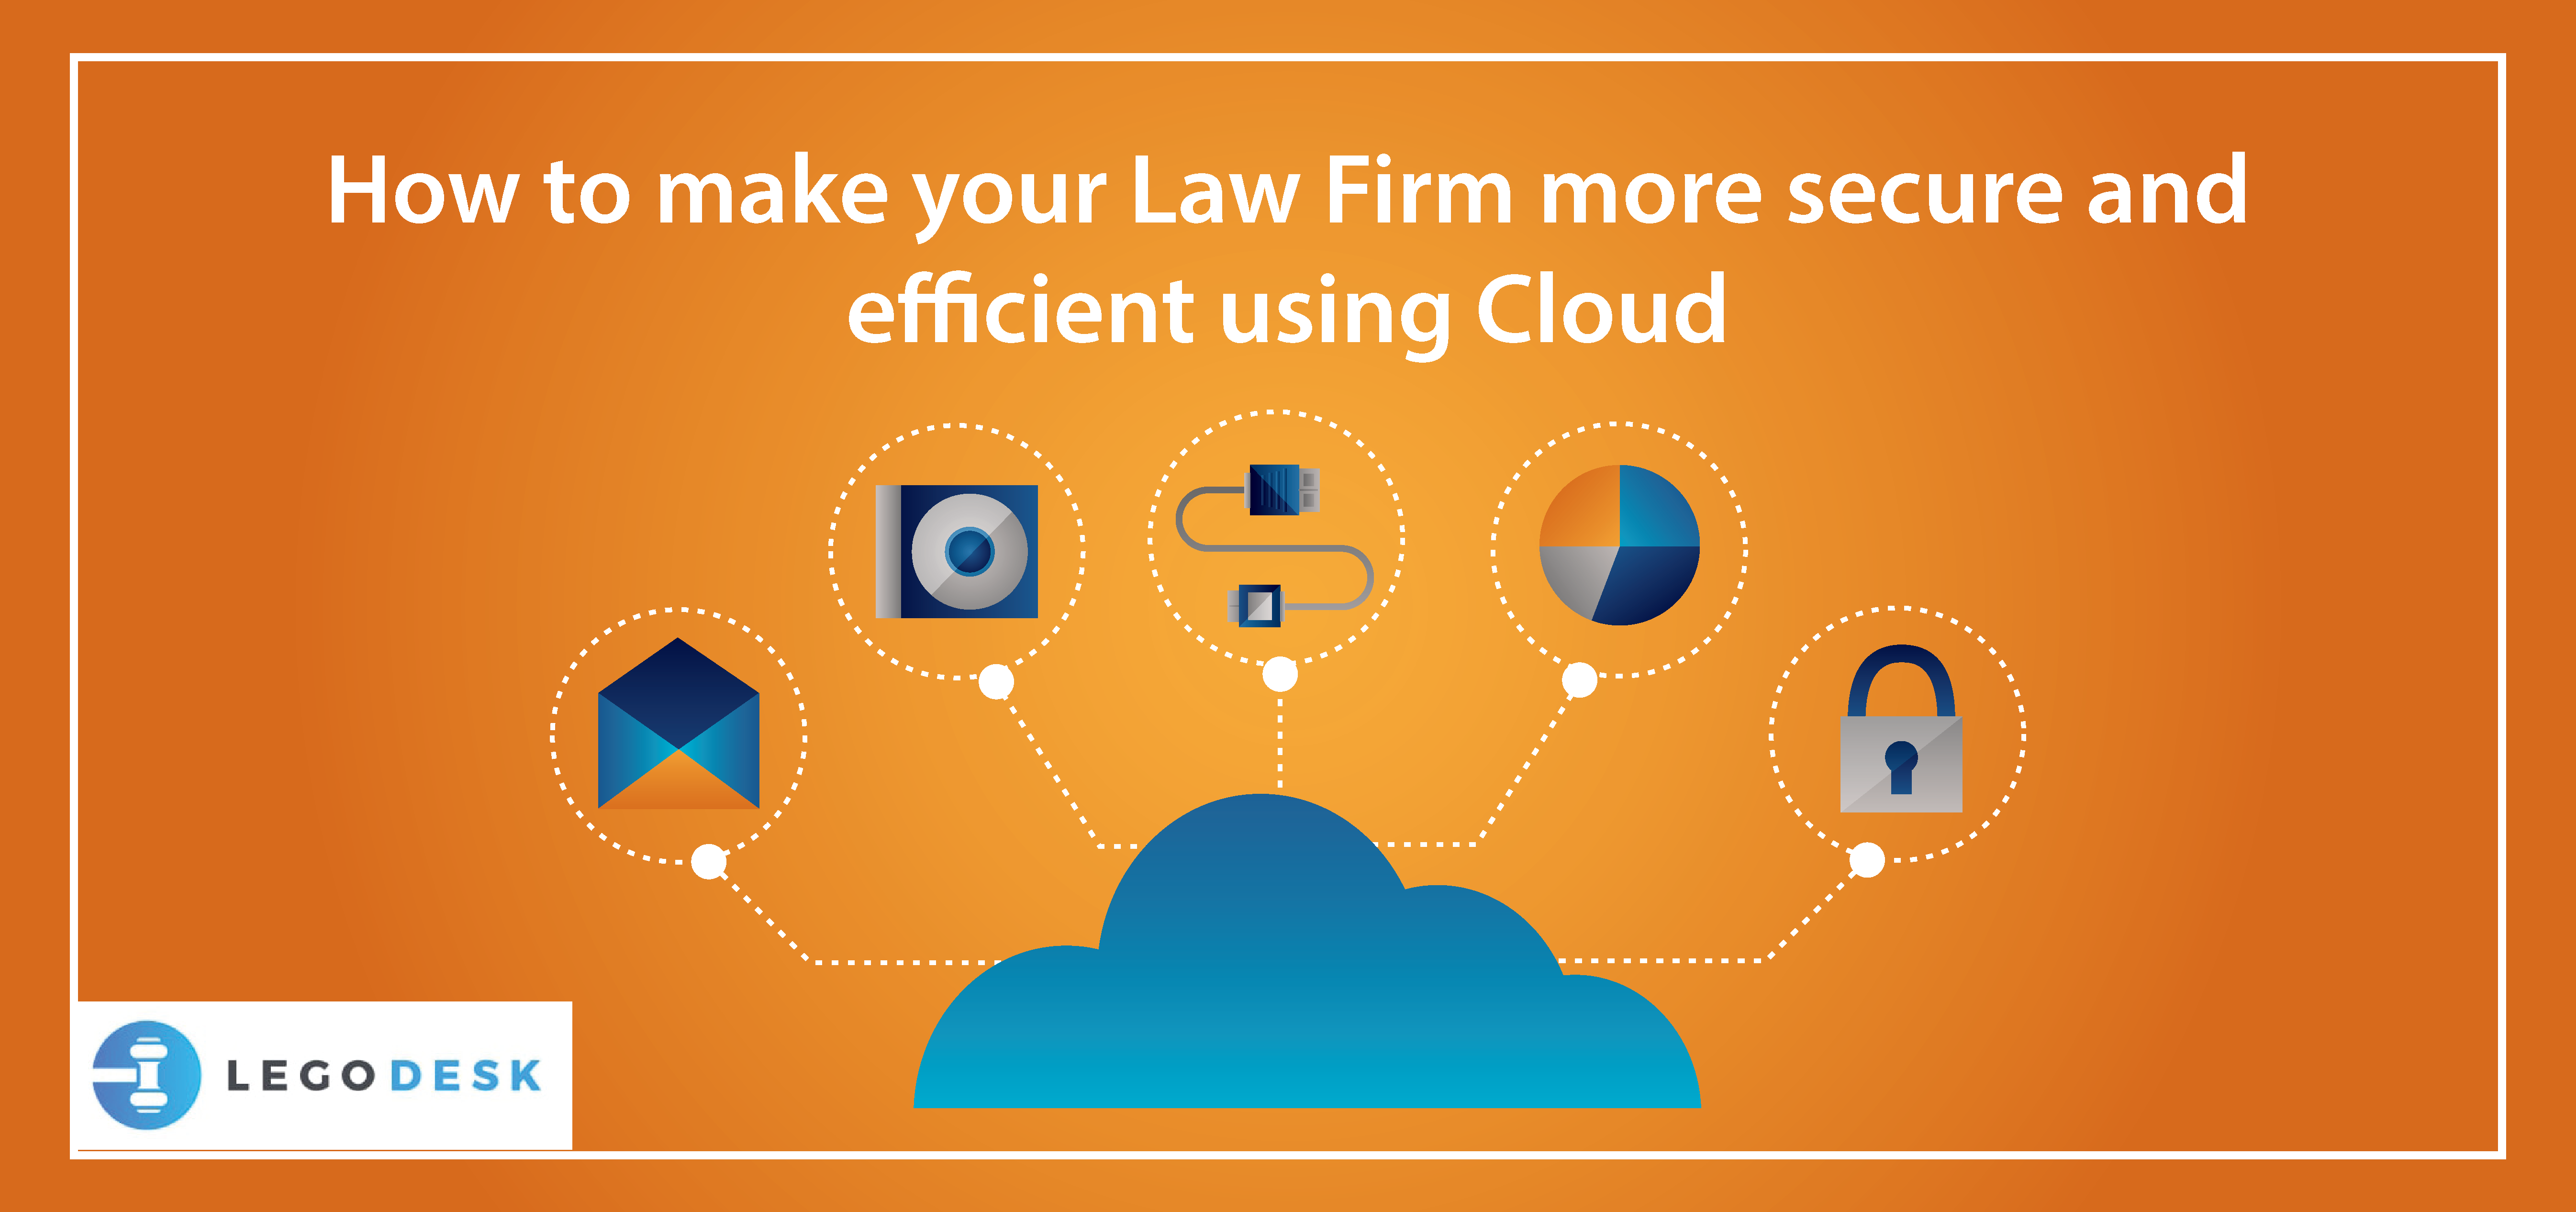 Managing your Law Firm on Cloud